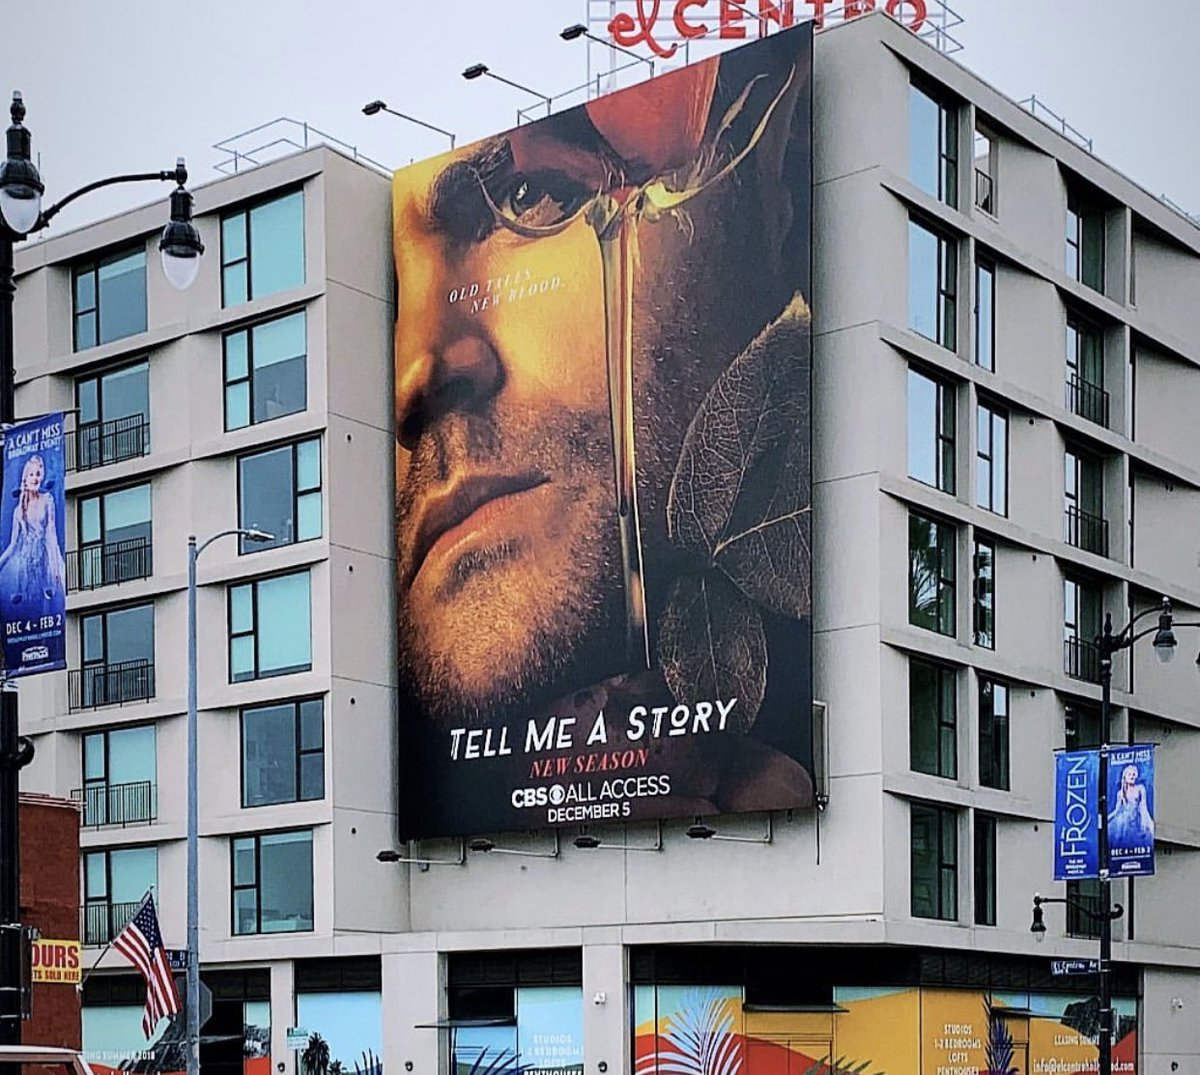 Tomorrow on ⁦@CBSAllAccess⁩ #TellMeAStory